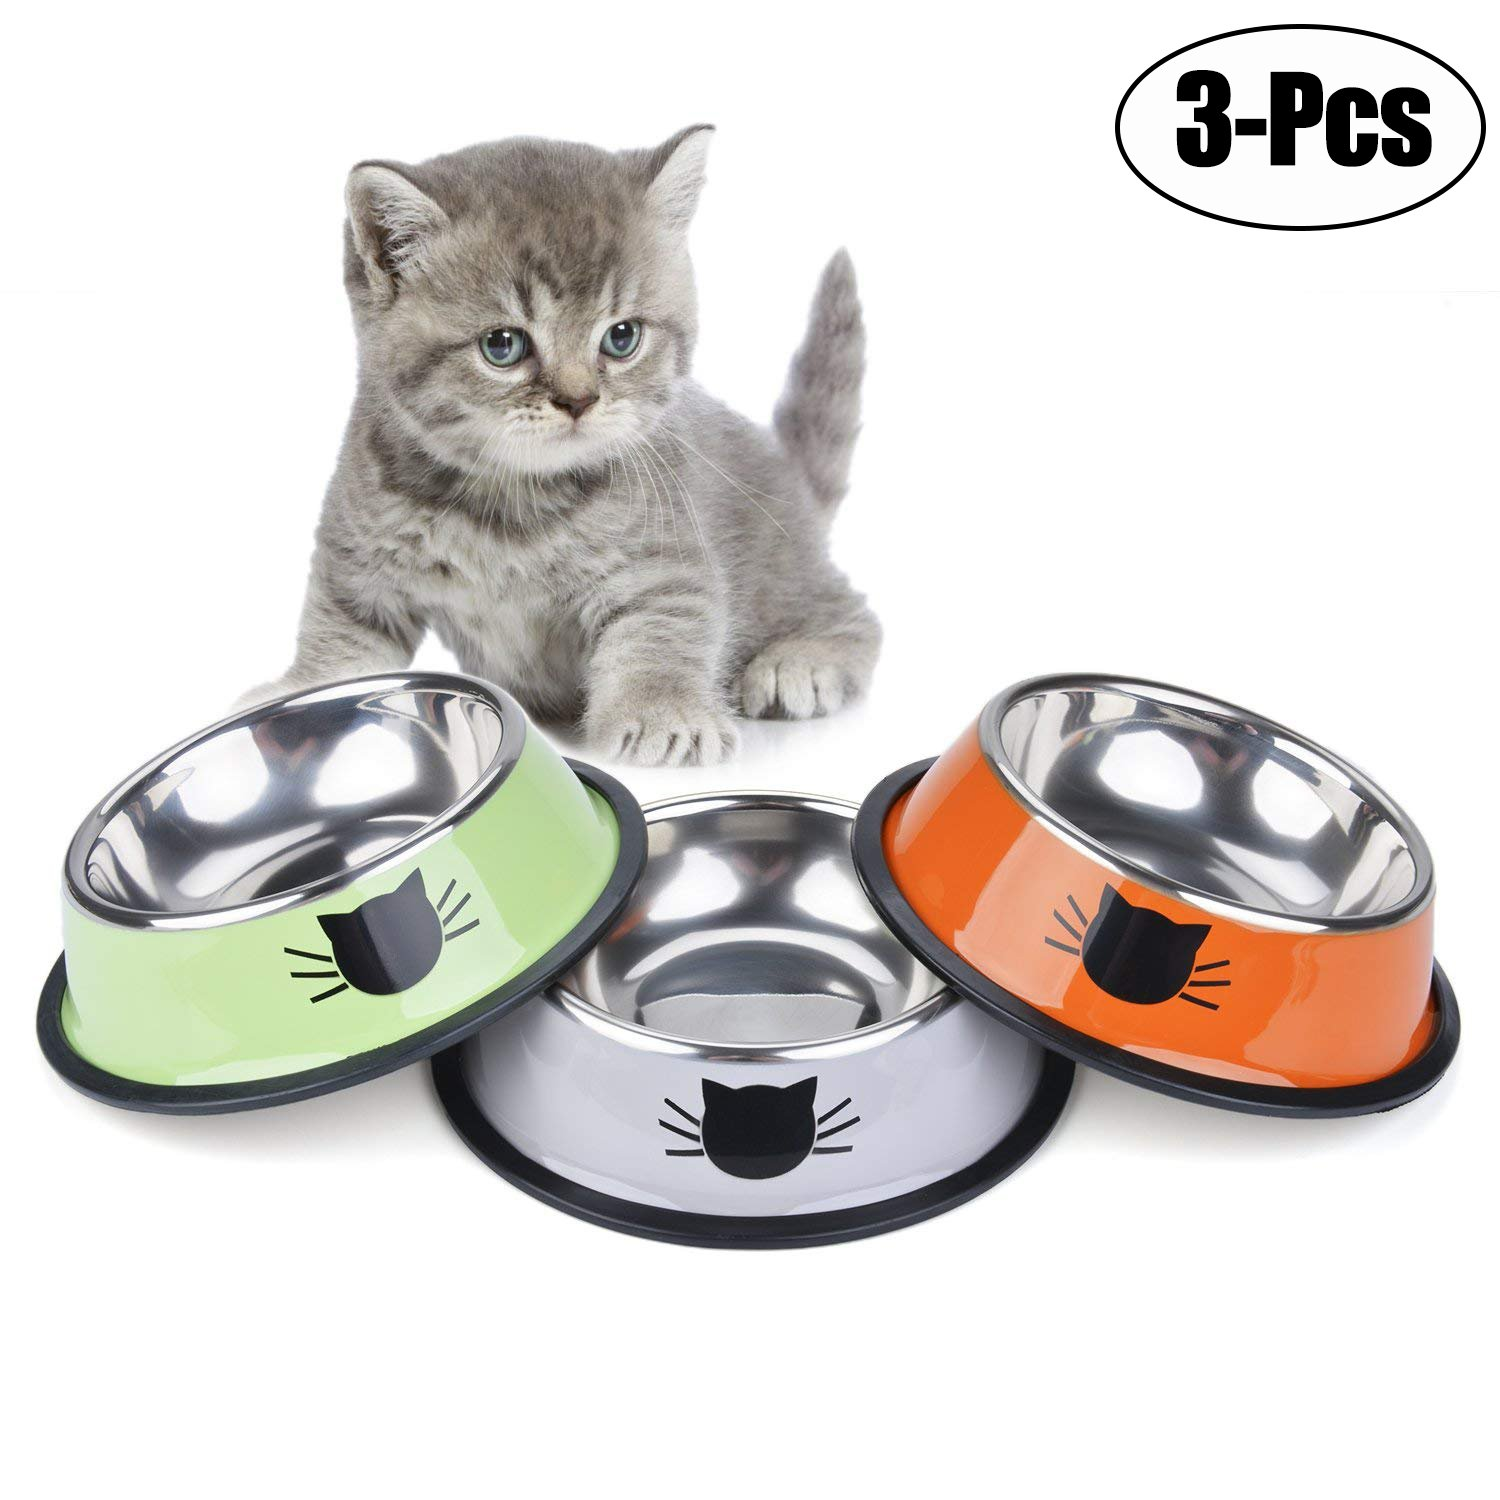 Legendog Cat Bowl Pet Bowl Stainless Steel Cat Food Water Bowl Non-Slip Rubber Base Small Pet Bowl Cat Feeding Bowls Set of 3 (Multicolor)